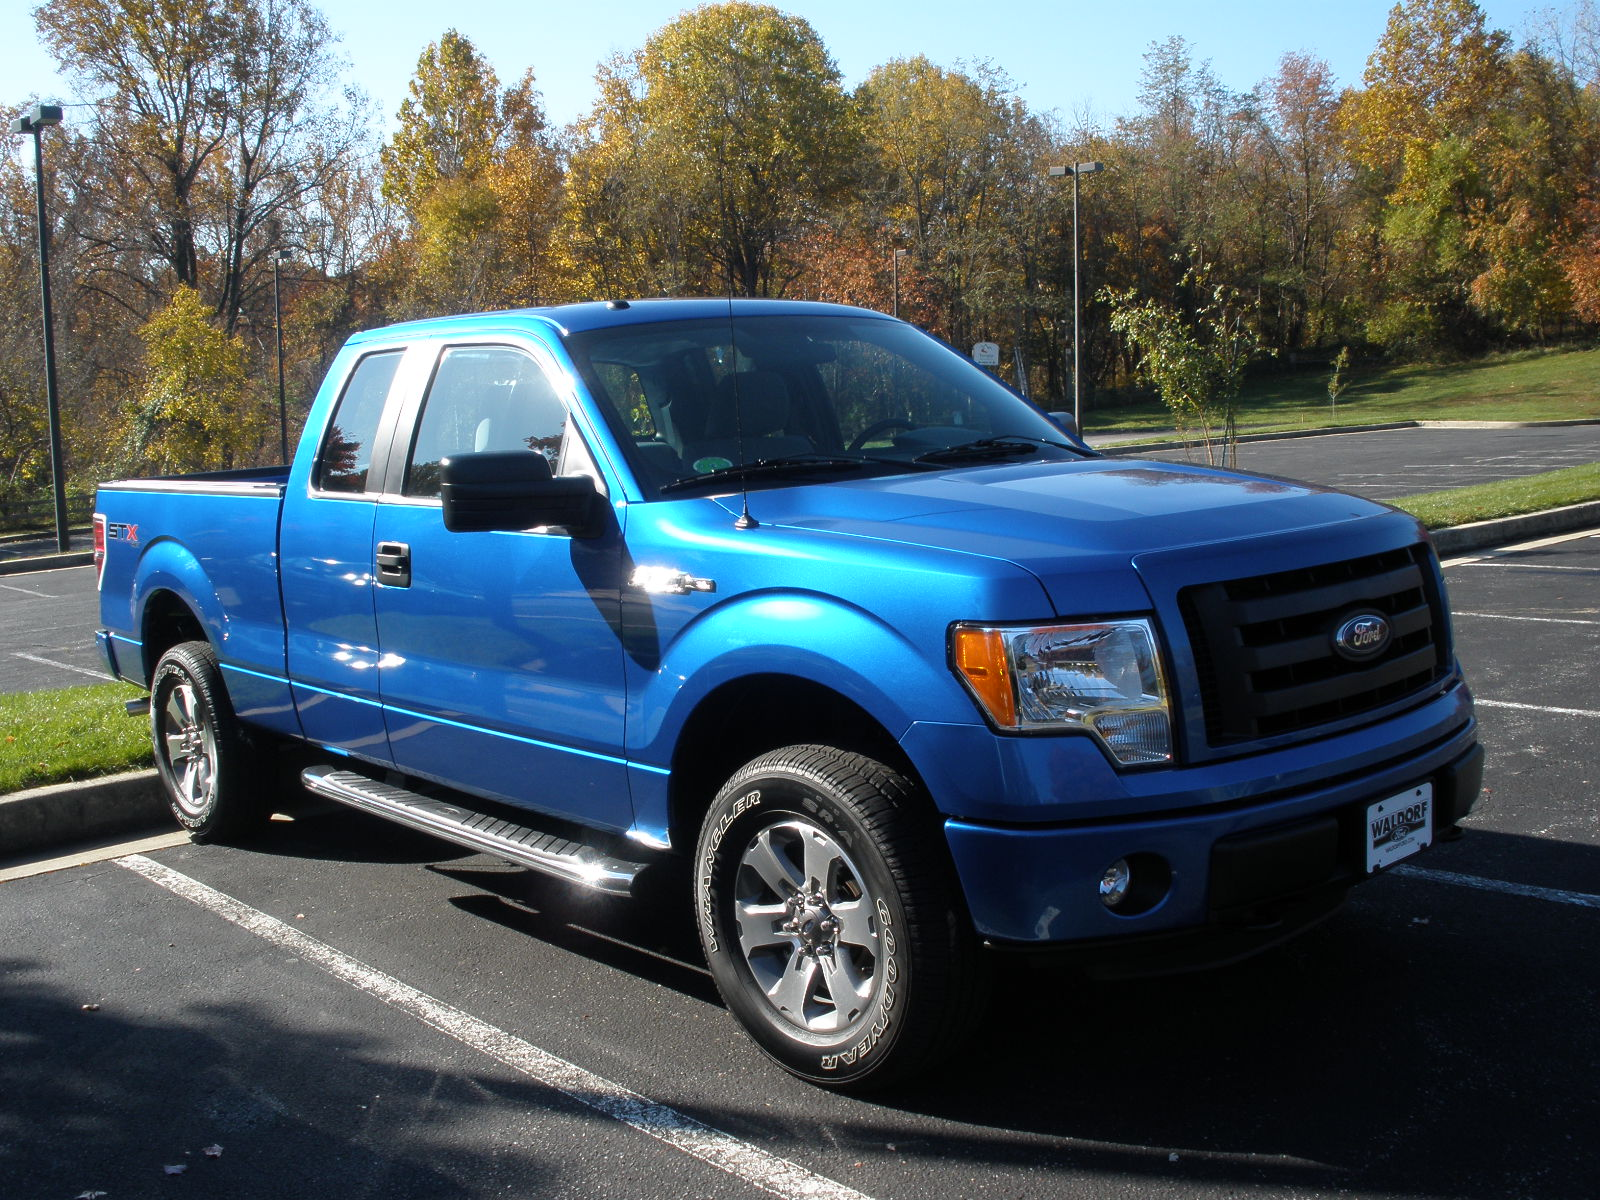 We Traded In Our Yellow Fj Toyota Cruiser For A Blue Ford